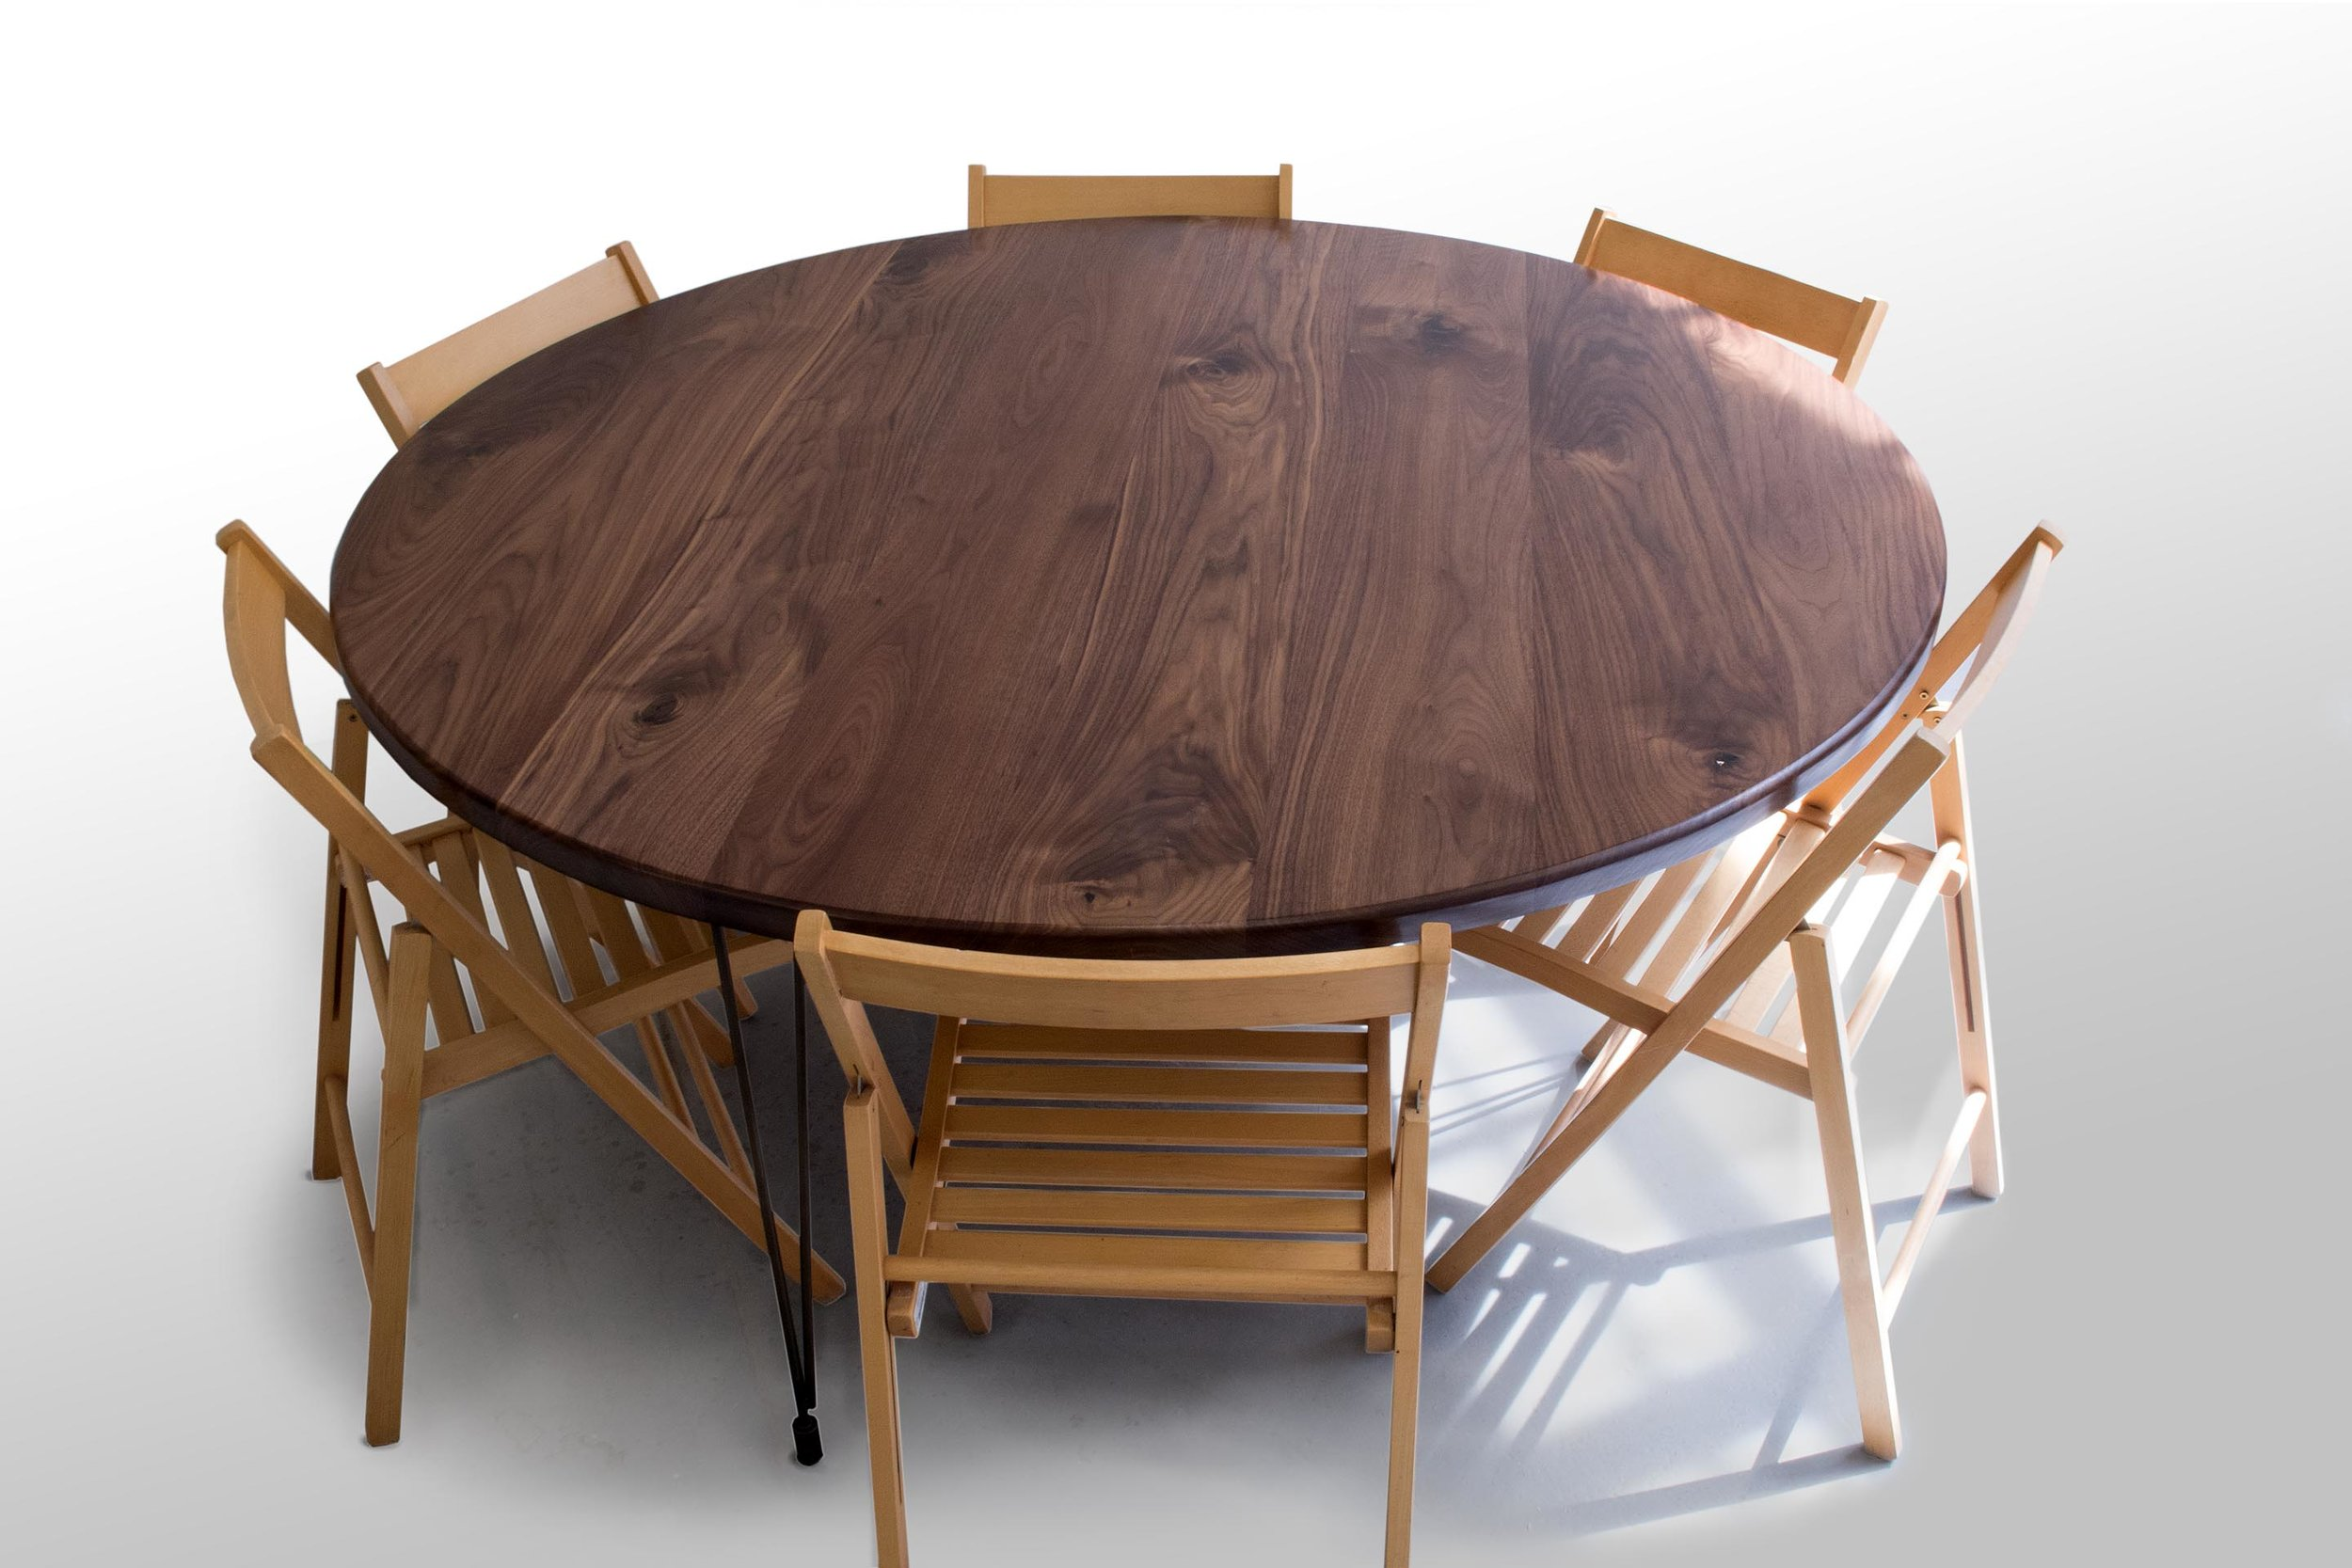 62 inch round walnut table with chairs.jpg